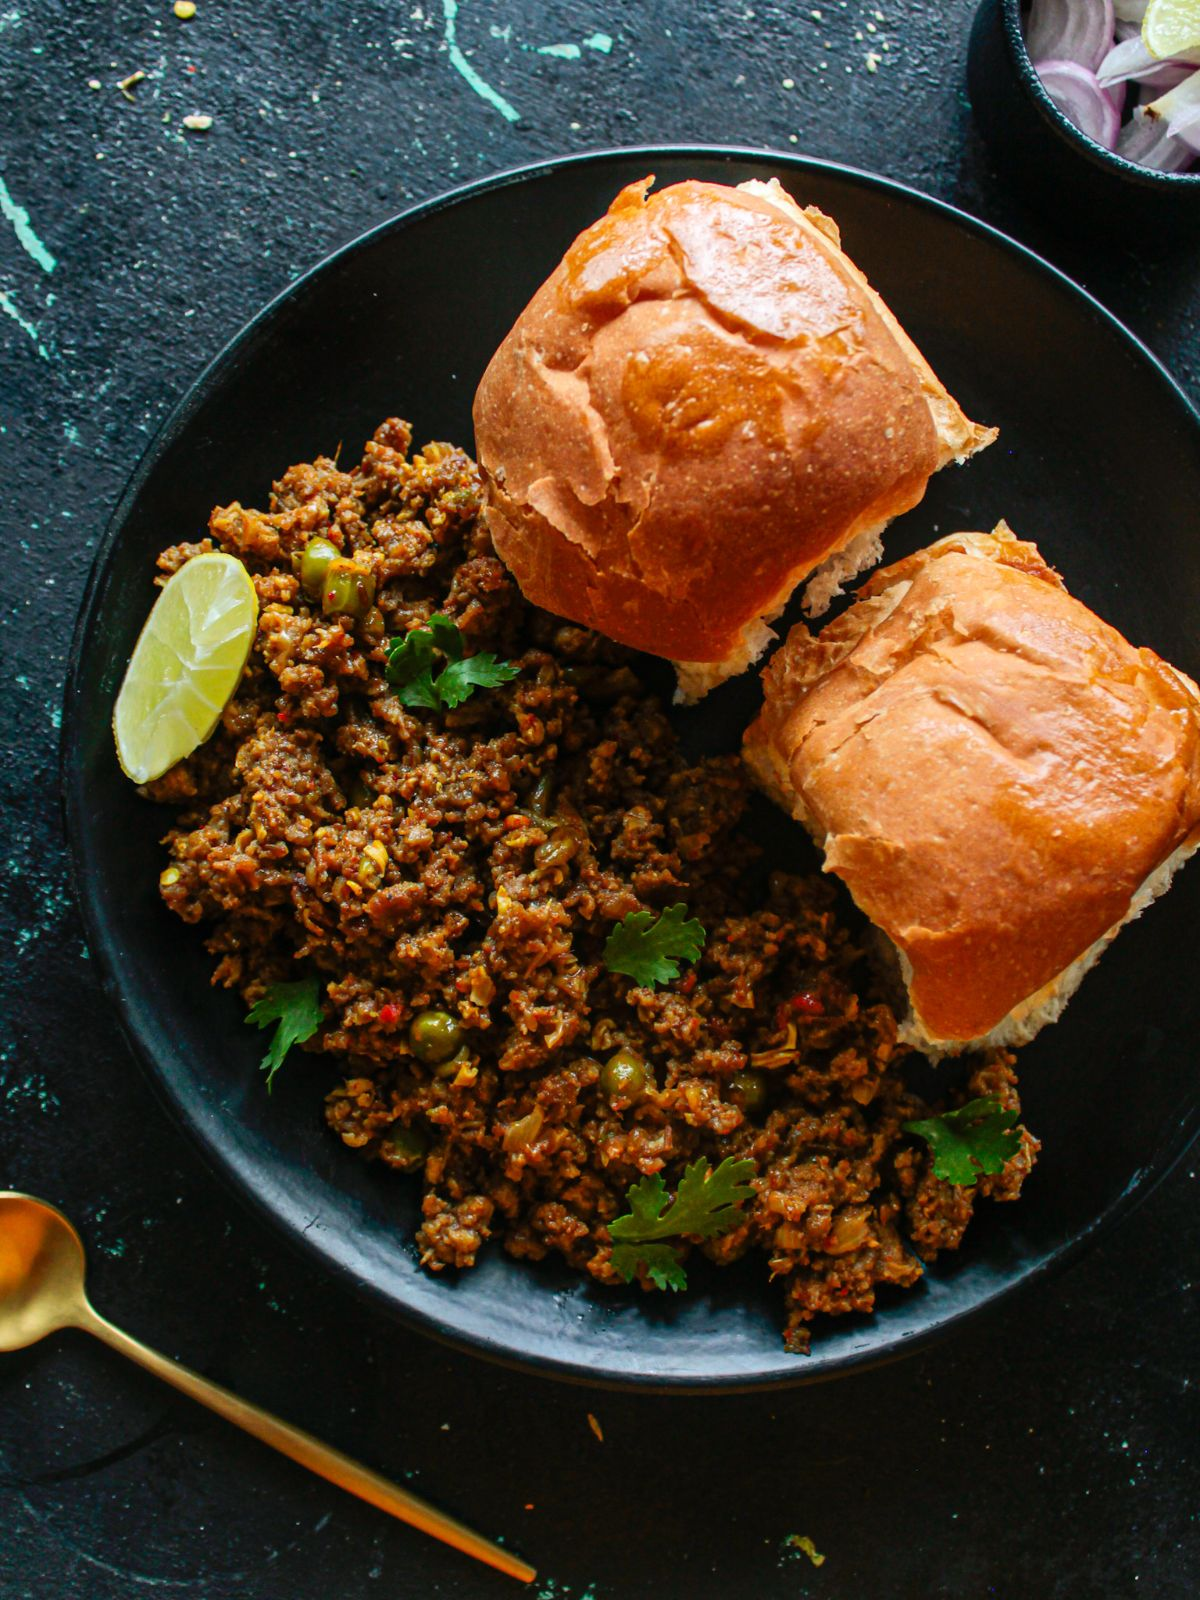 Black plate of keema with lemon wedge and two rolls on top